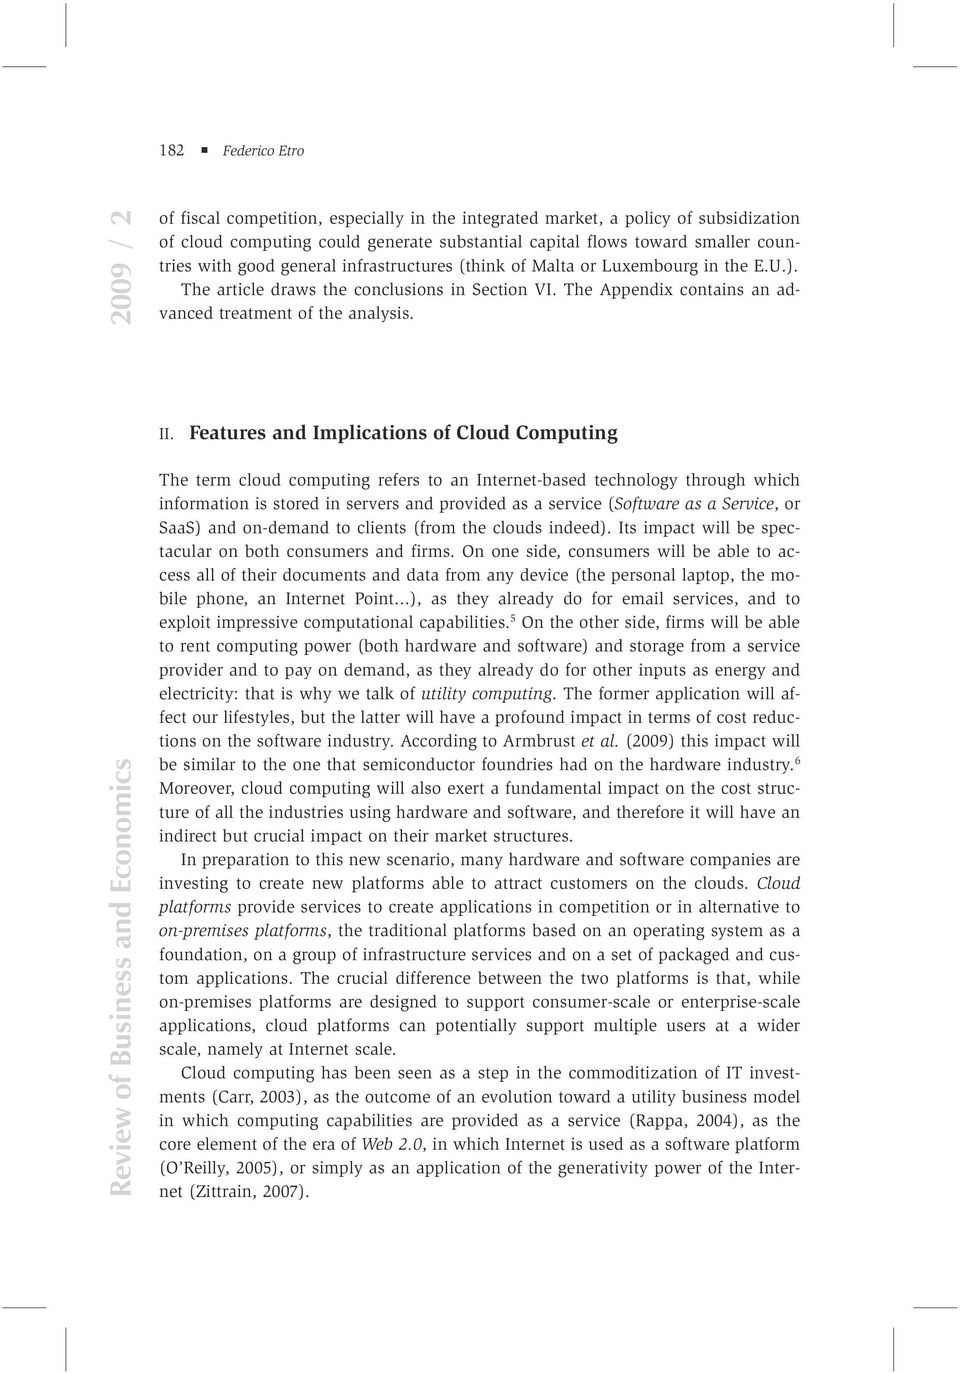 Feaures and Implicaions of Cloud Compuing The erm cloud compuing refers o an Inerne-based echnology hrough which informaion is sored in servers and provided as a service (Sofware as a Service, or